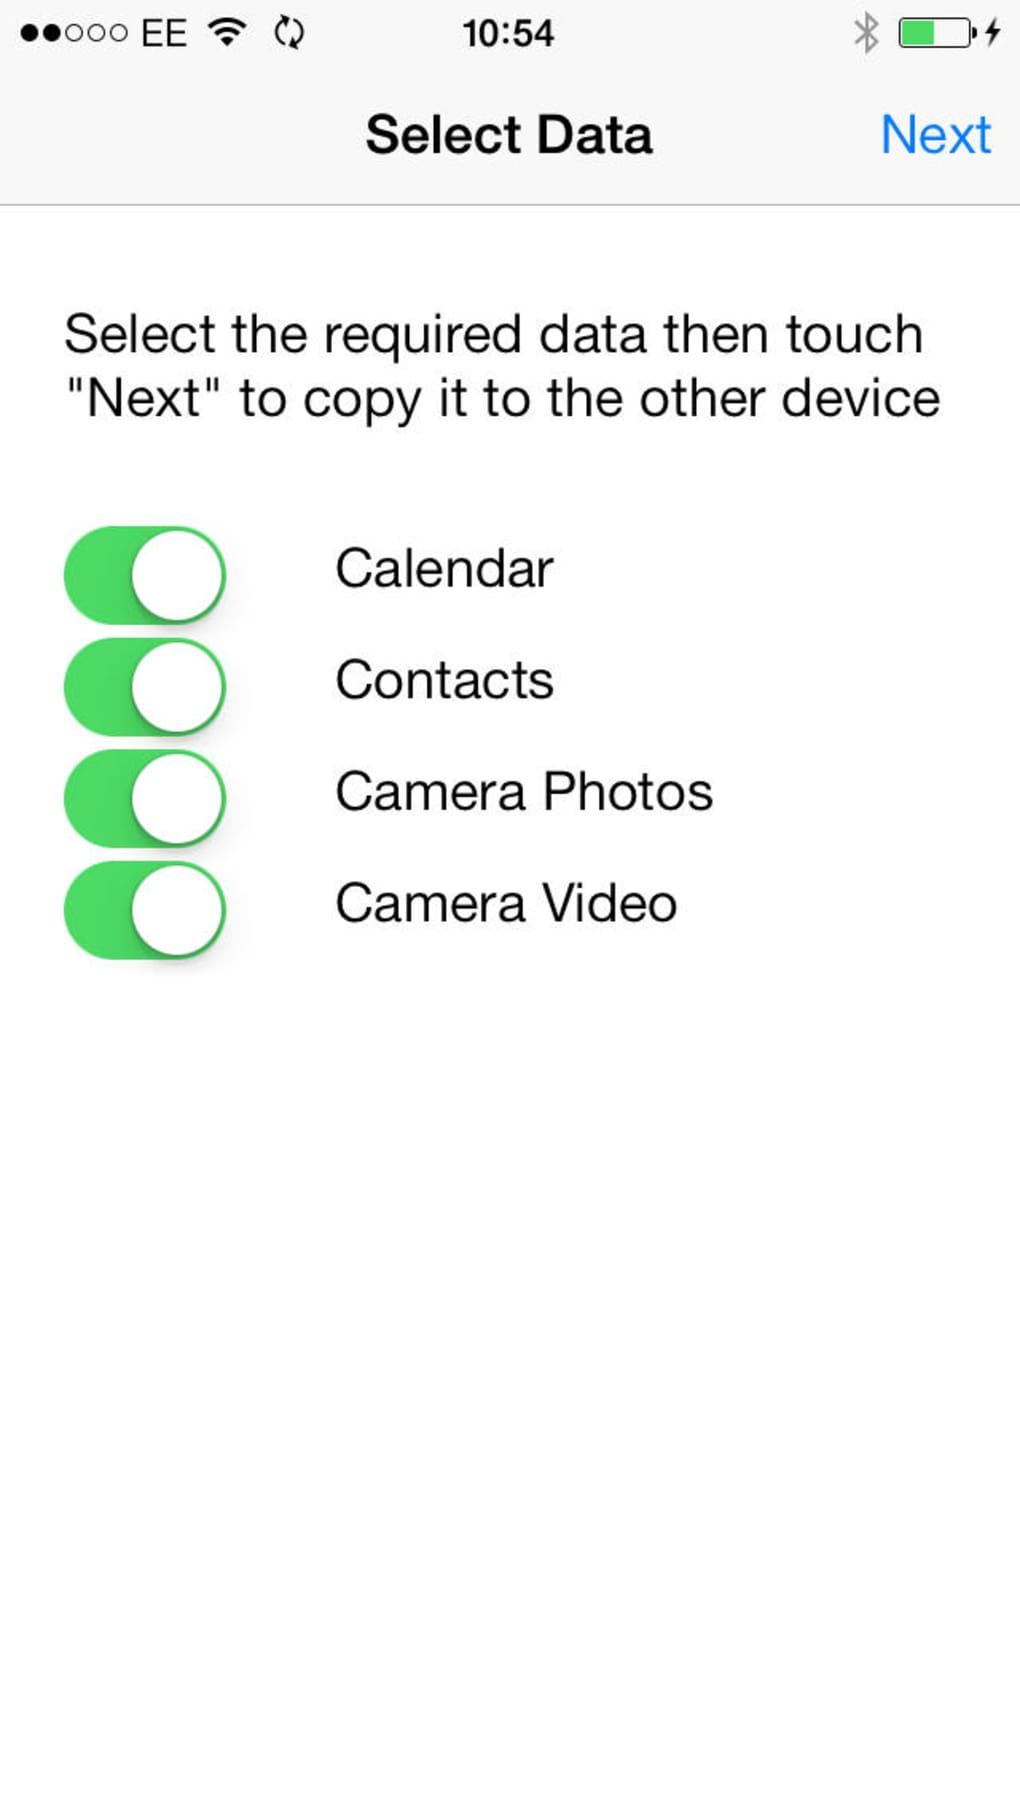 Copy My Data for iPhone - Download